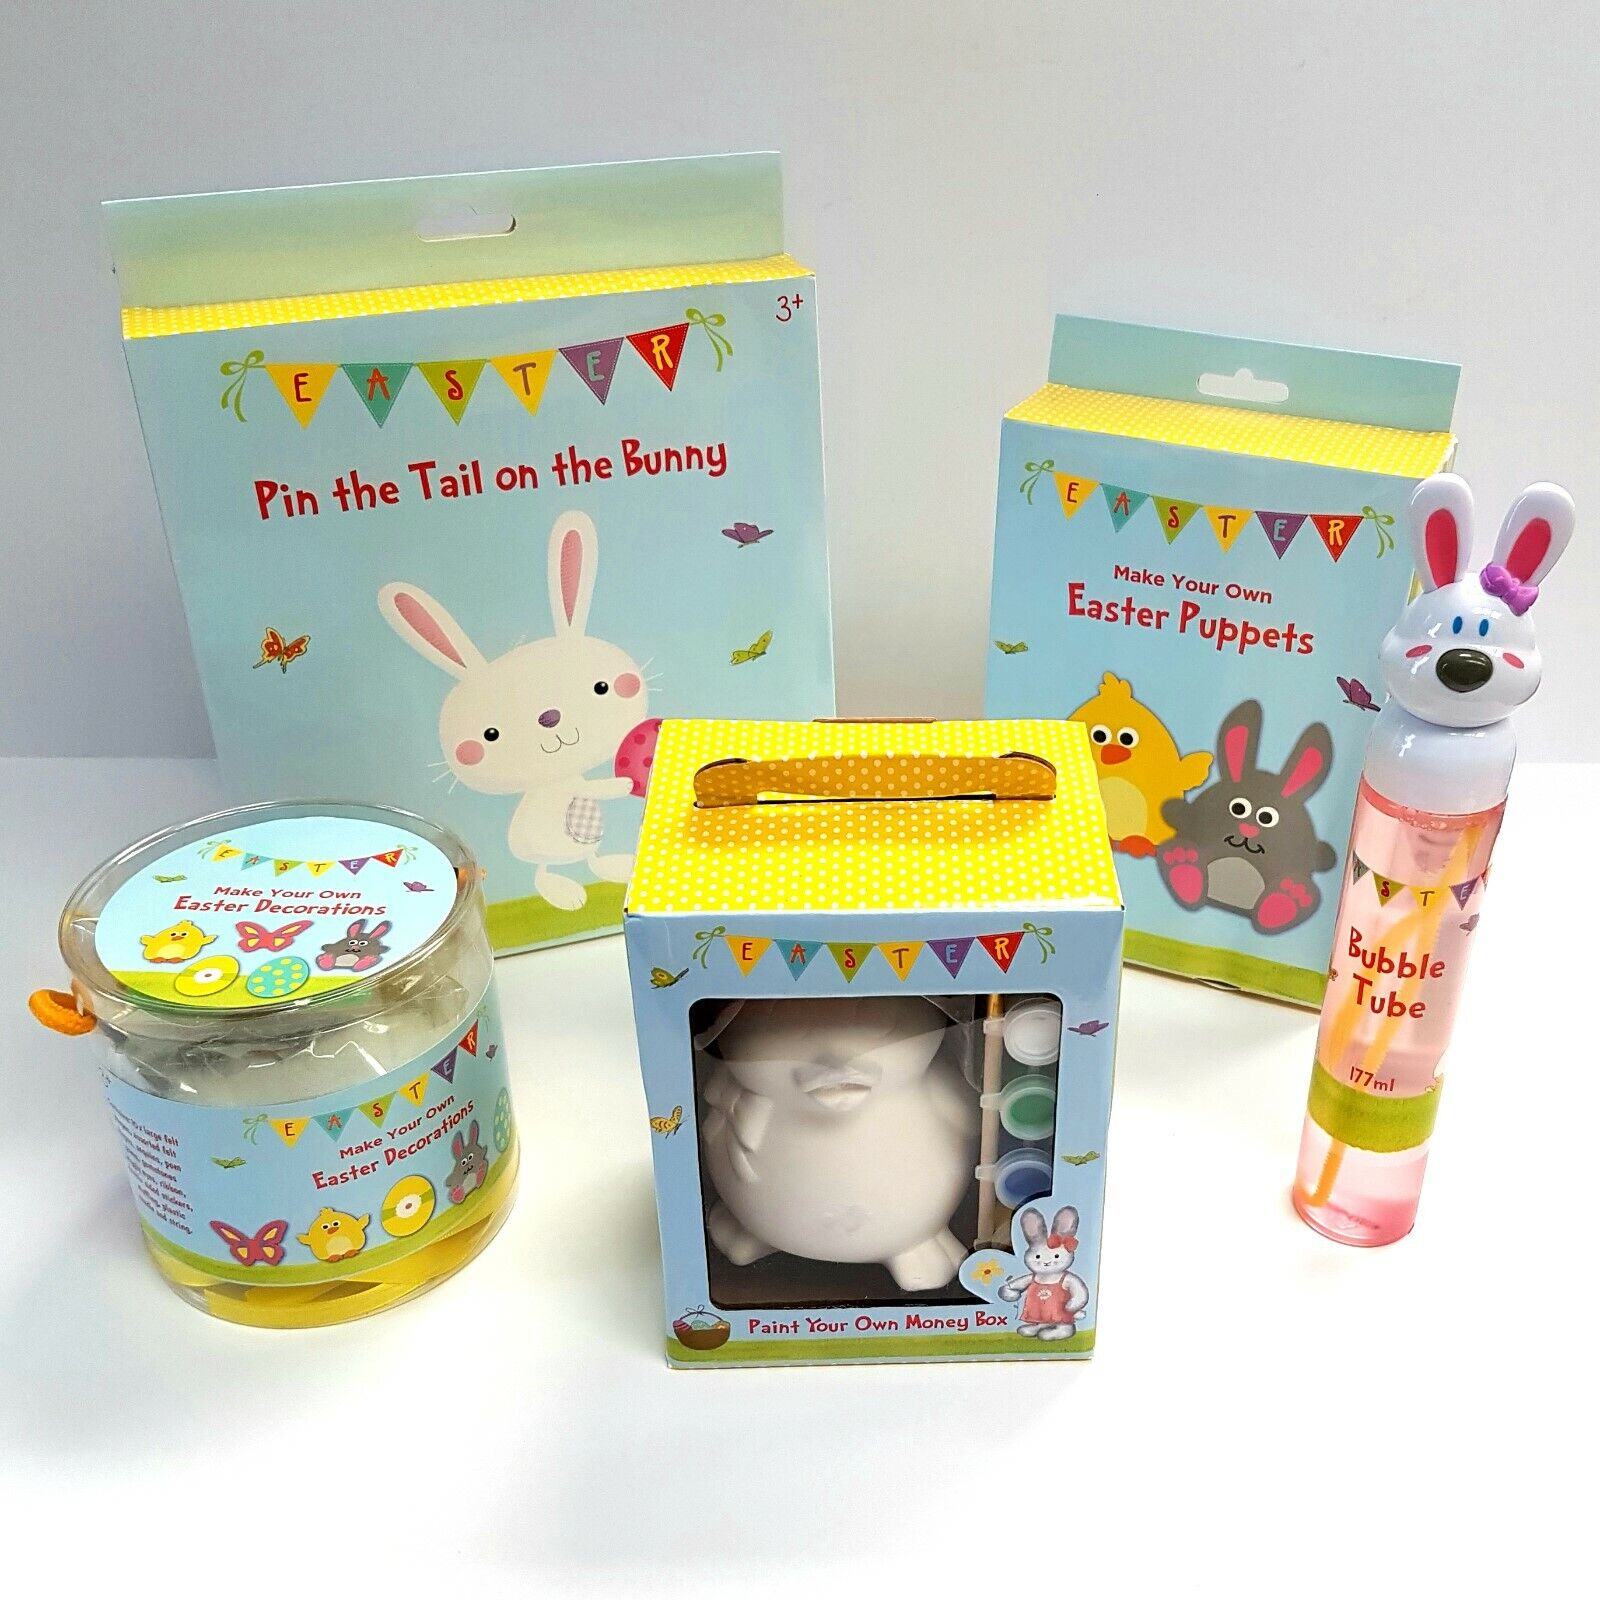 Details About Mega Easter Bundle Art Craft Paint Bubbles Pin The Tail Bunny Puppets